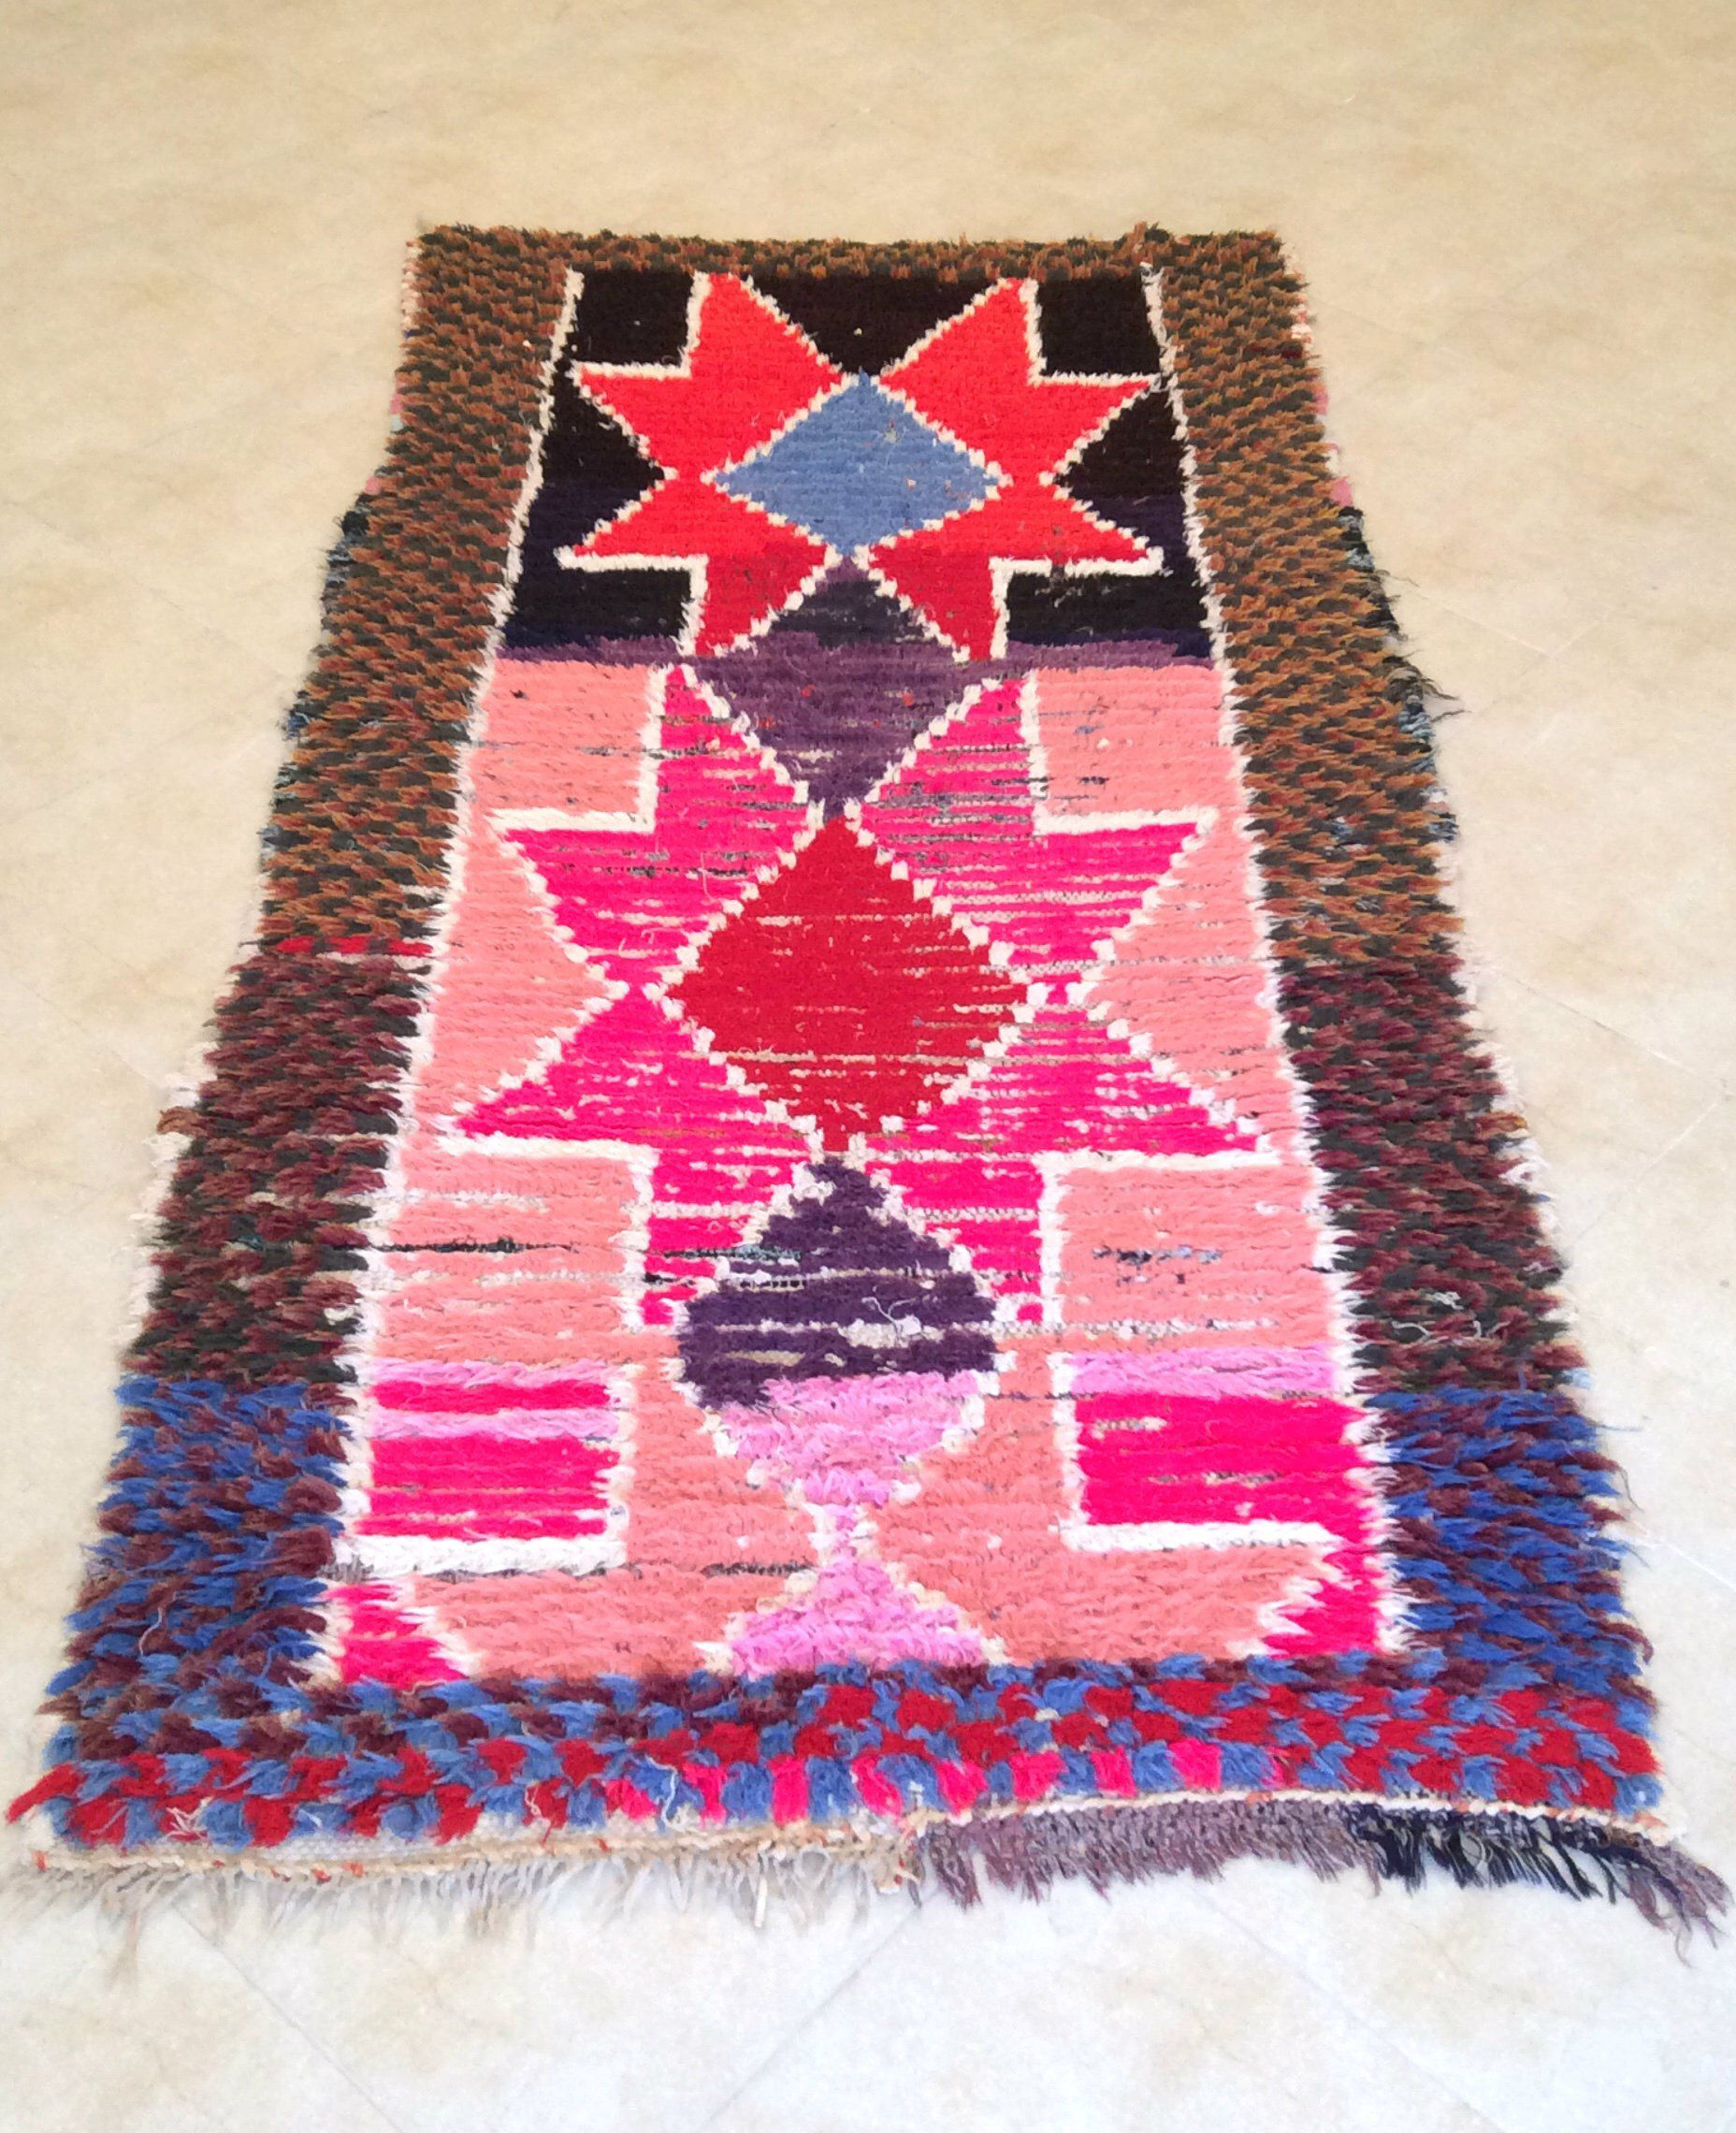 Boucherouite Tapis Berber Boucherouite Rug From The Moroccan Atlas Mountains Will